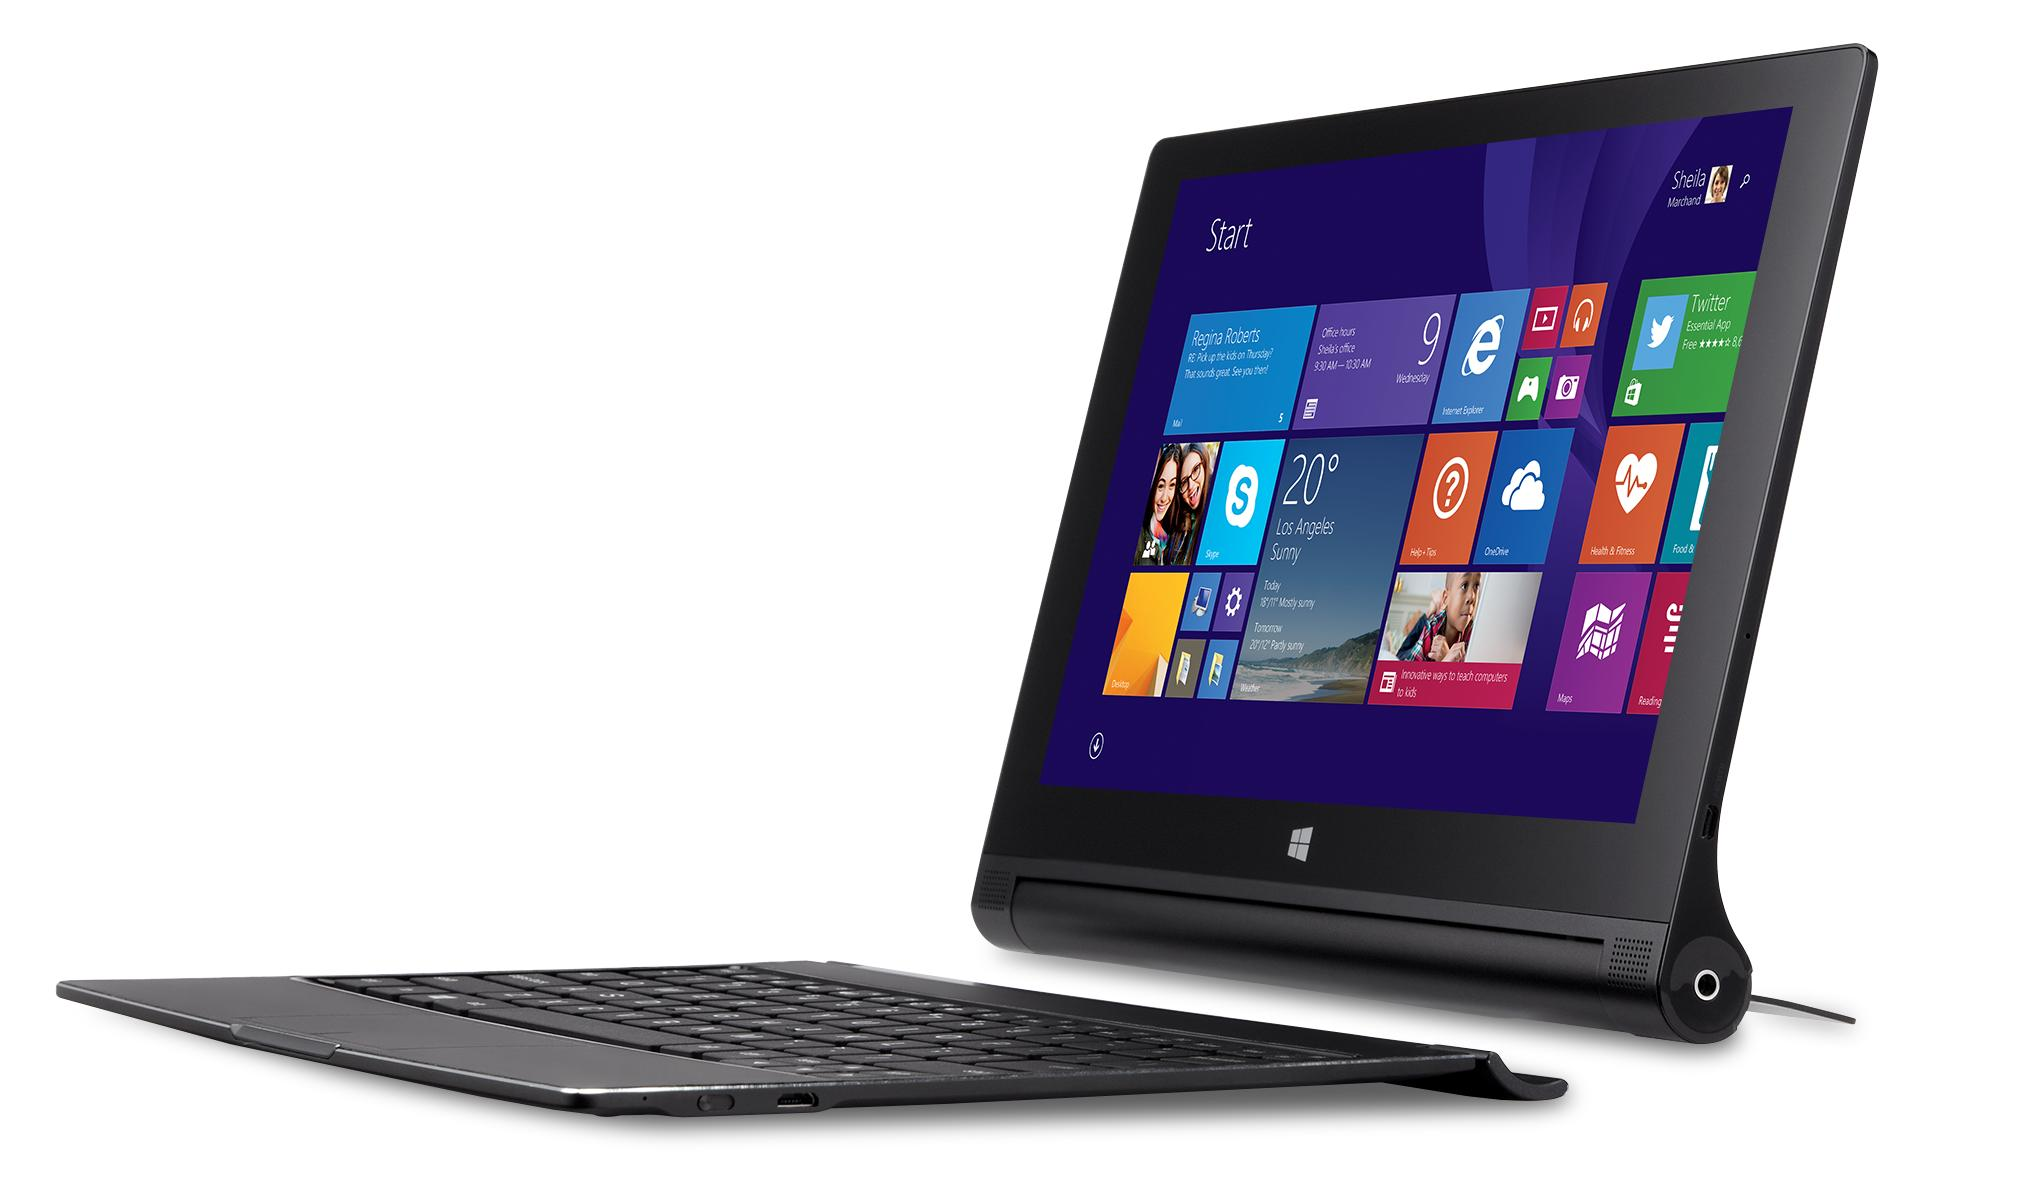 Lenovo Yoga Tablet 2 with Windows (10